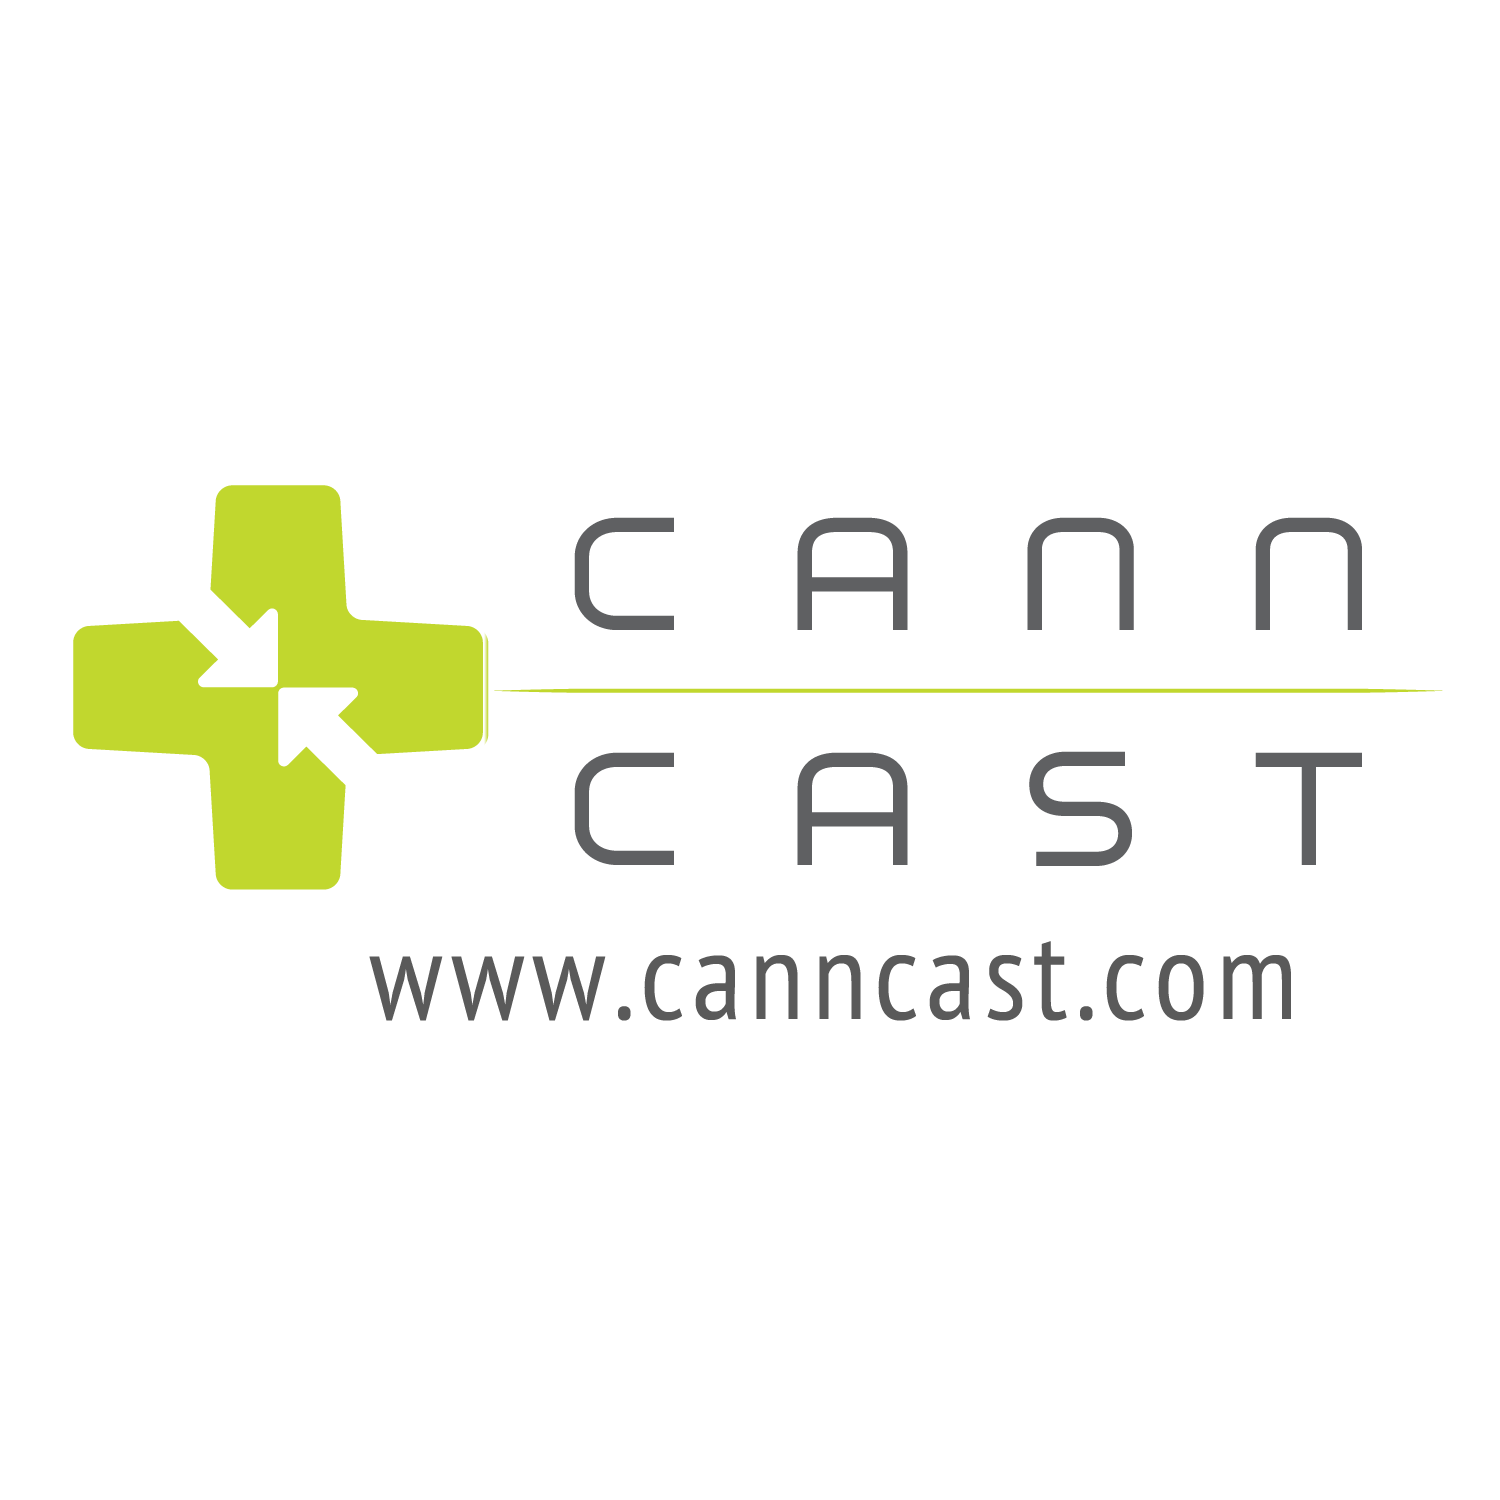 Logo for CannCast.com